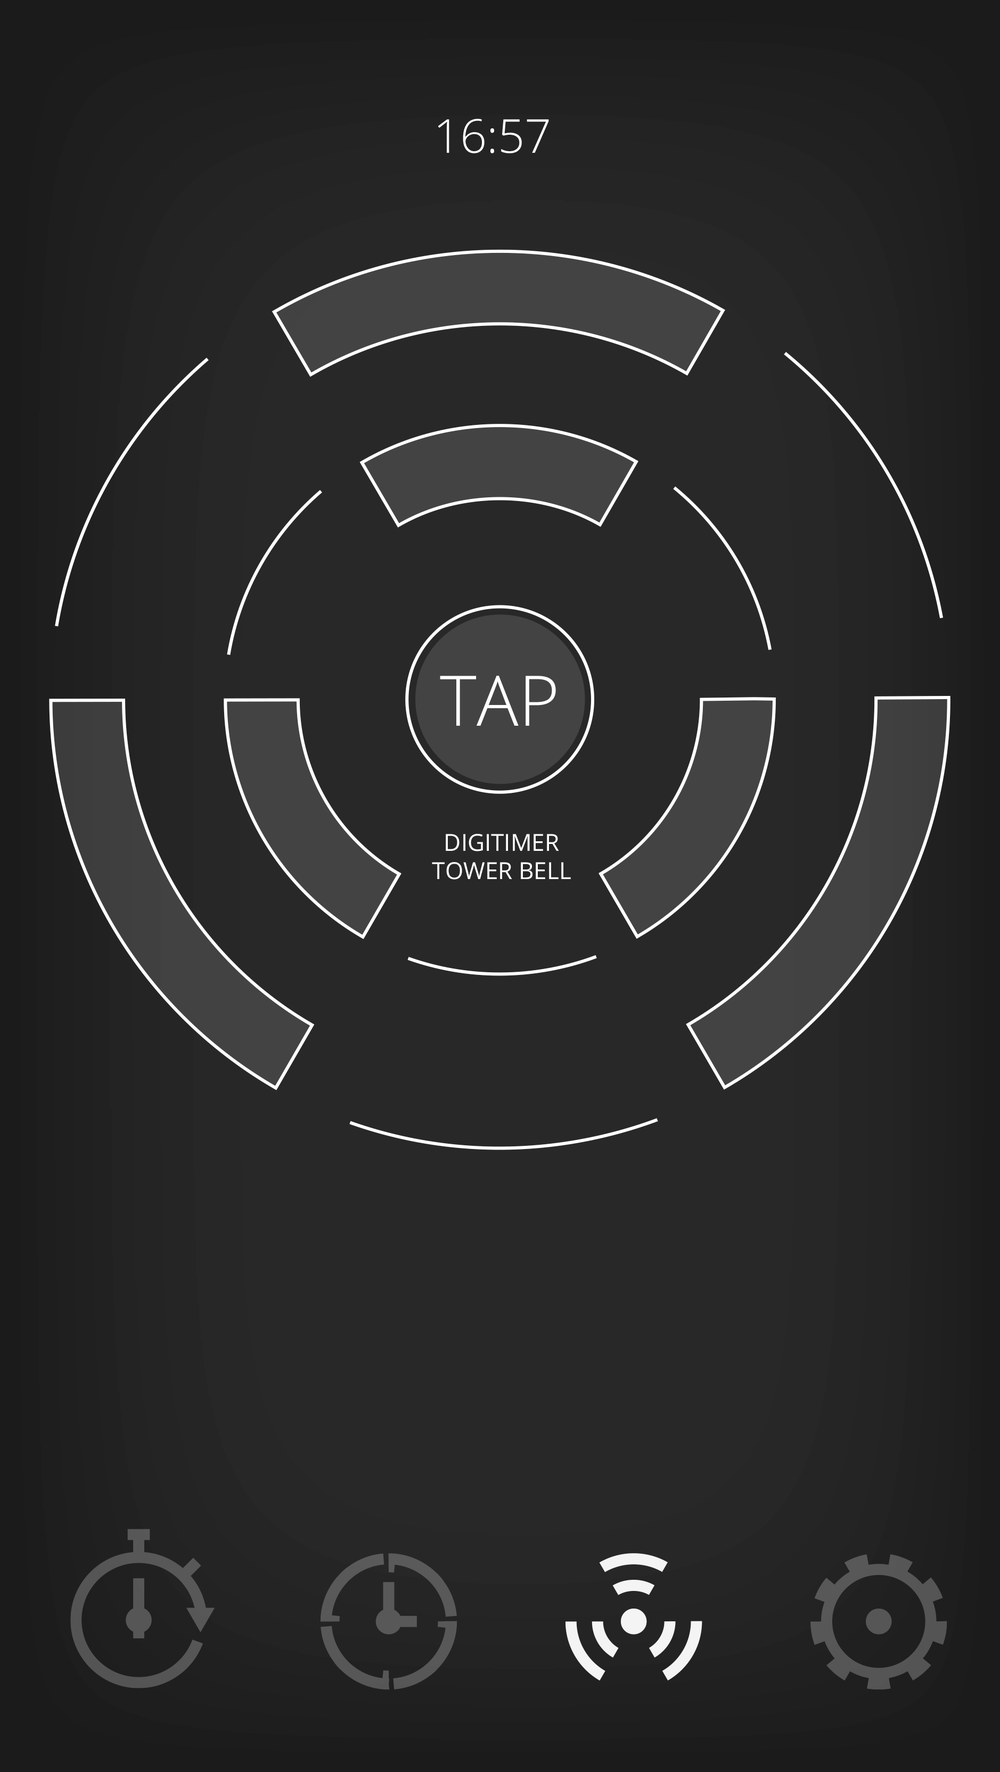 Tap:  When active, you can tap your phone and it will respond with the time.Uses a pattern of vibrations when the sound is off.